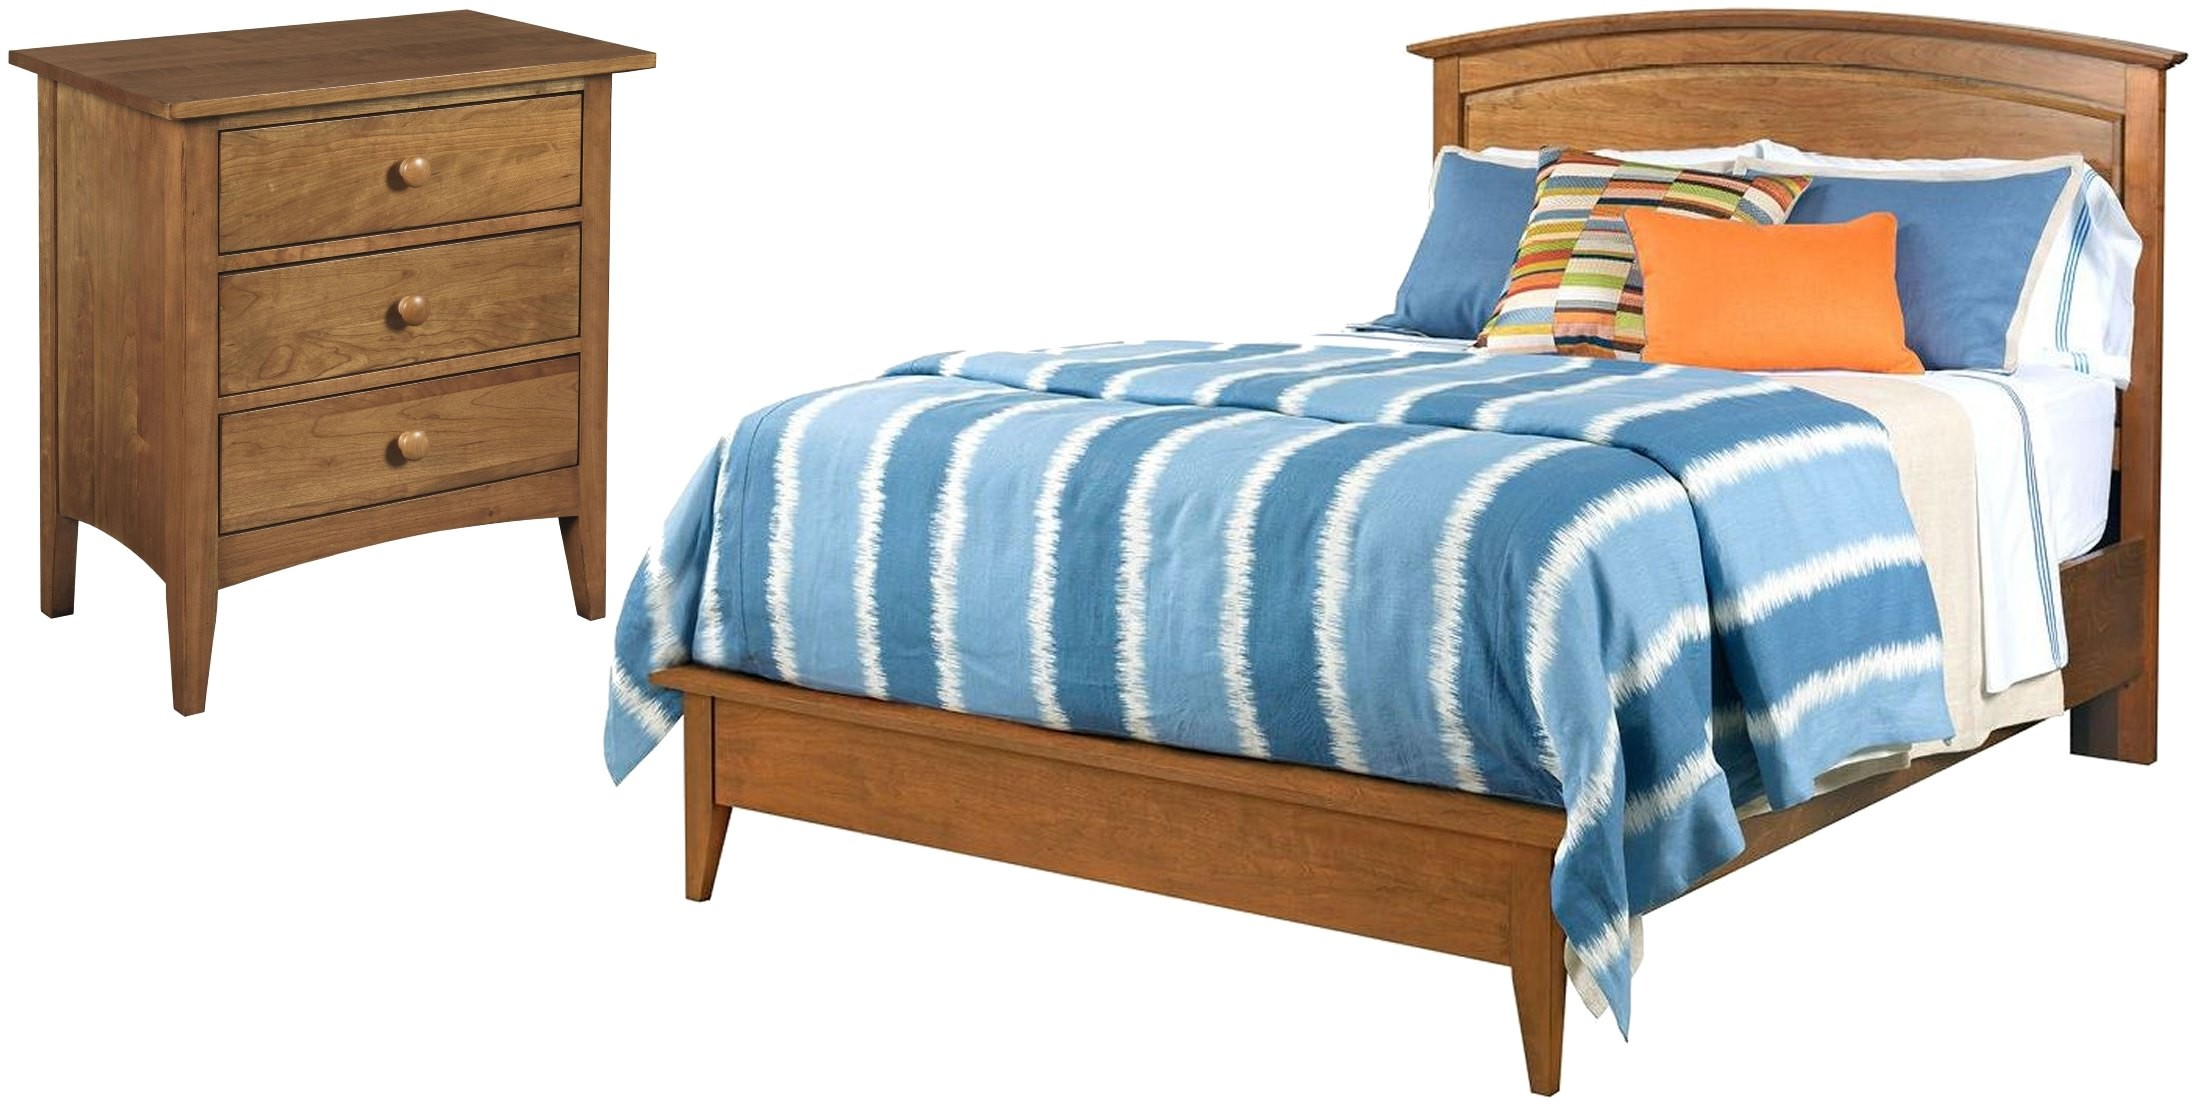 Gatherings Honey Arch Bedroom Set From Kincaid (44 2110P)   Coleman  Furniture